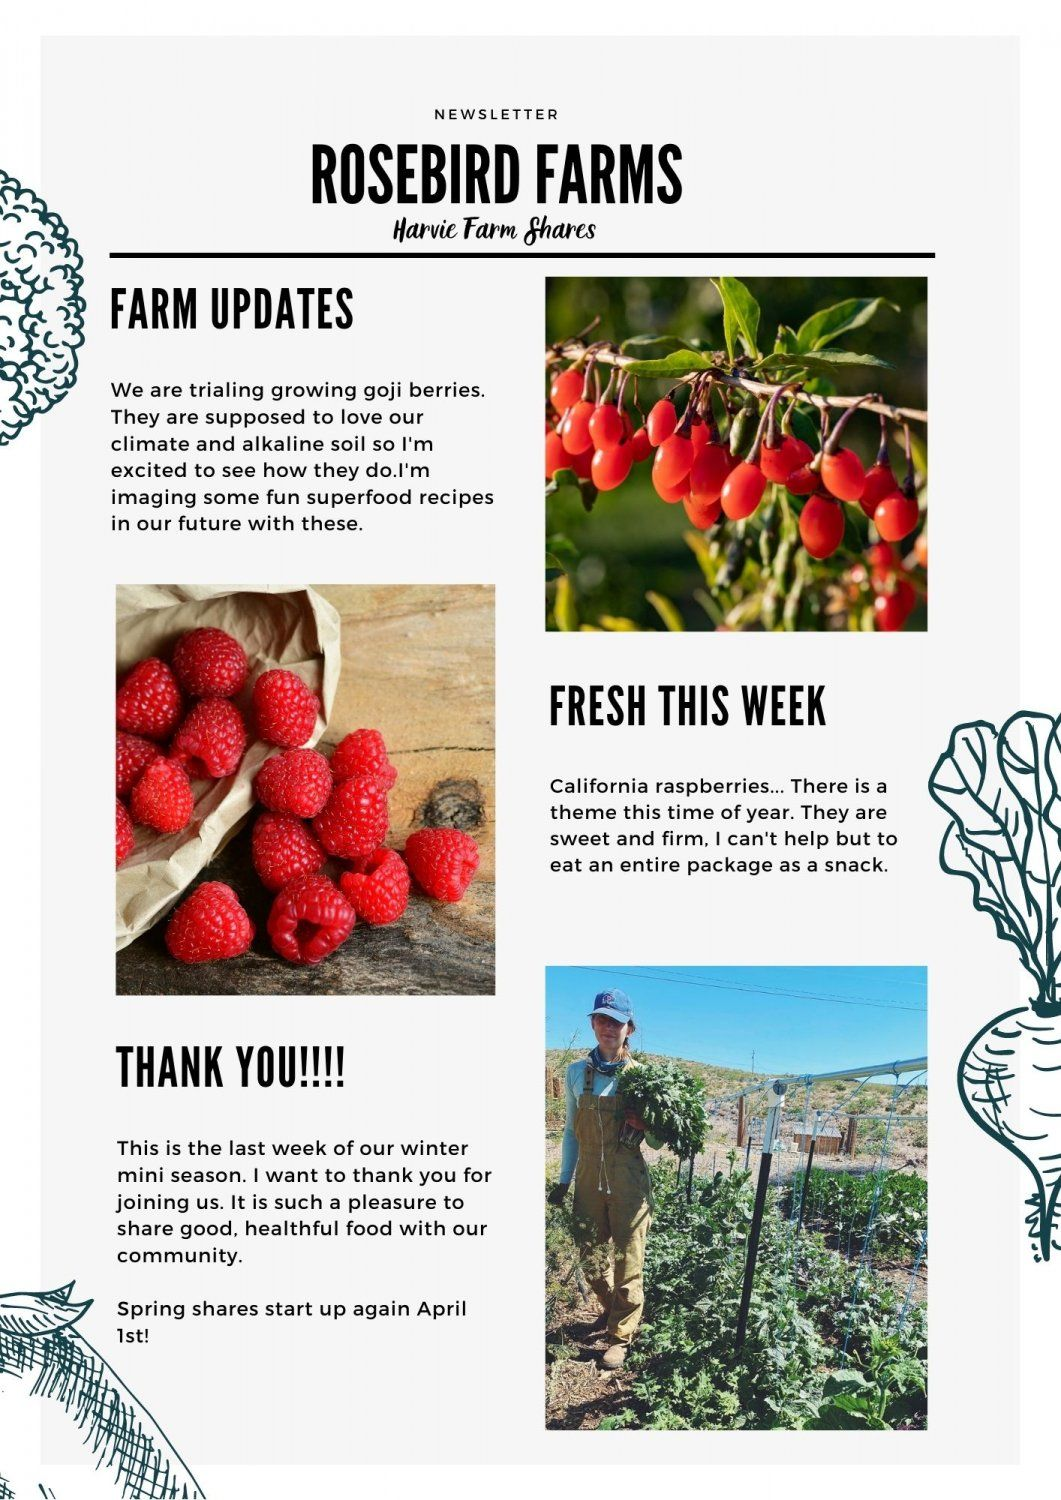 Next Happening: Farm Happenings for March 11, 2021